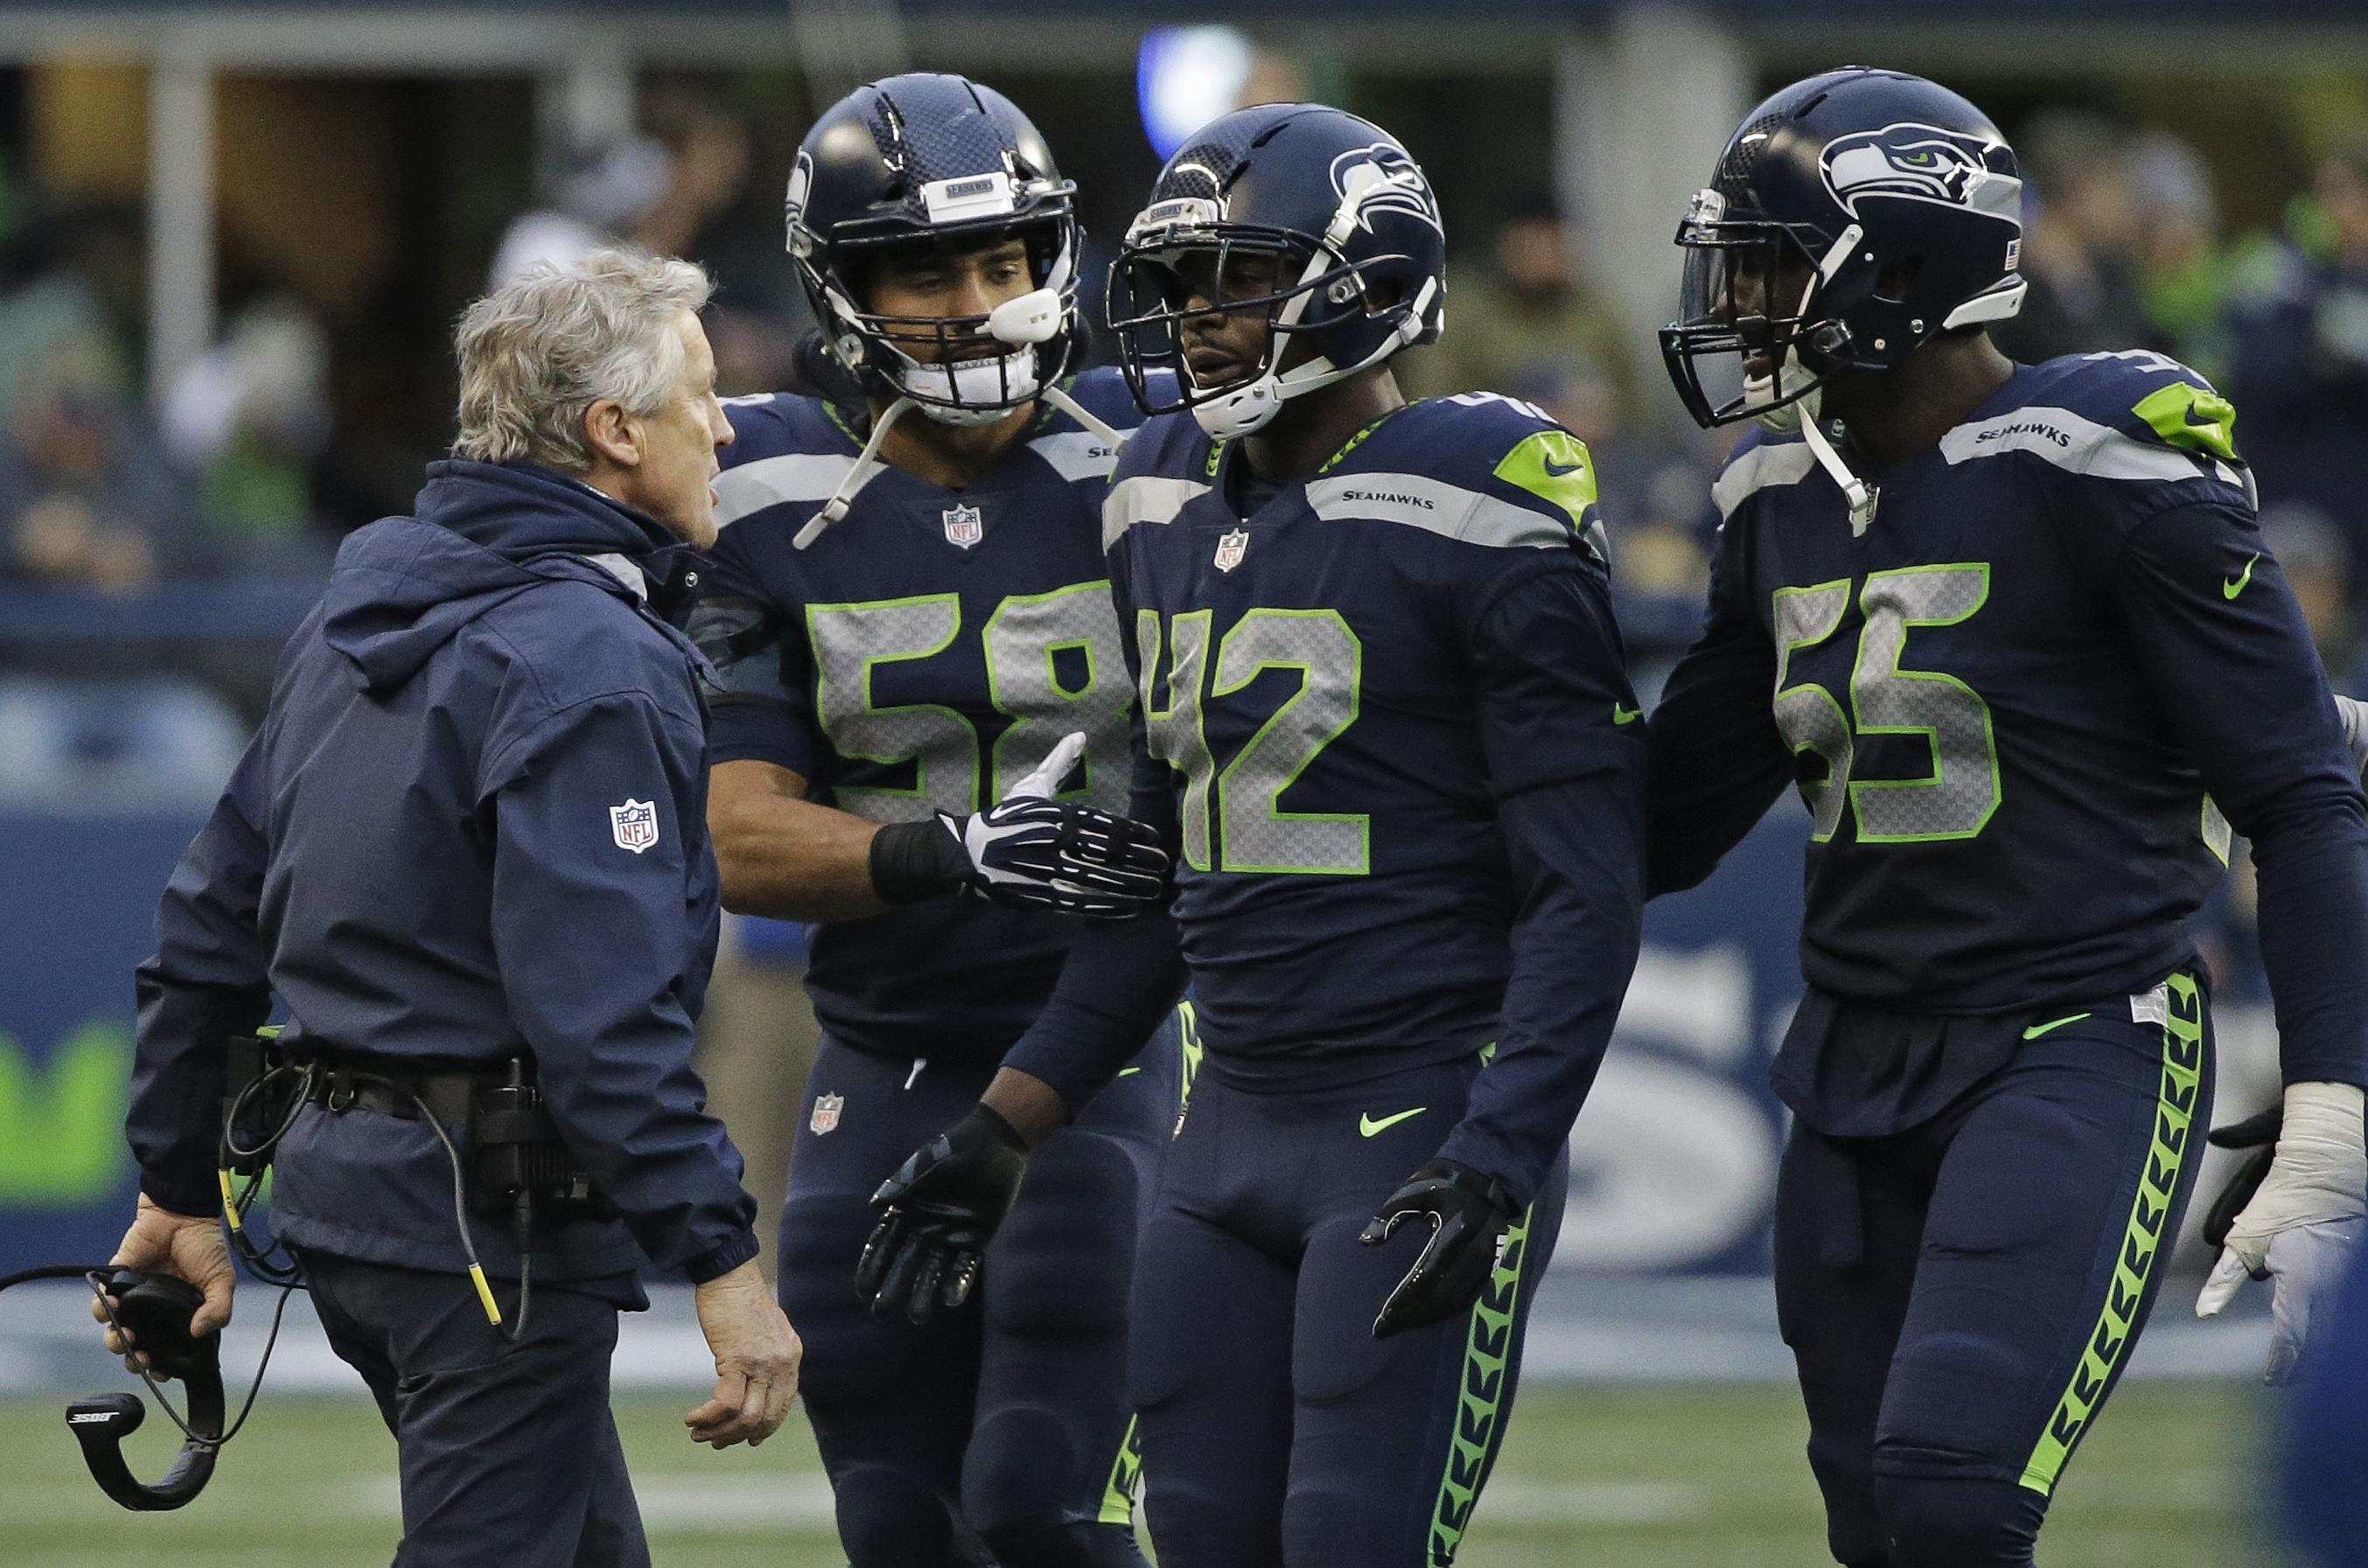 seahawks loss may signal end of era for team pete carroll too